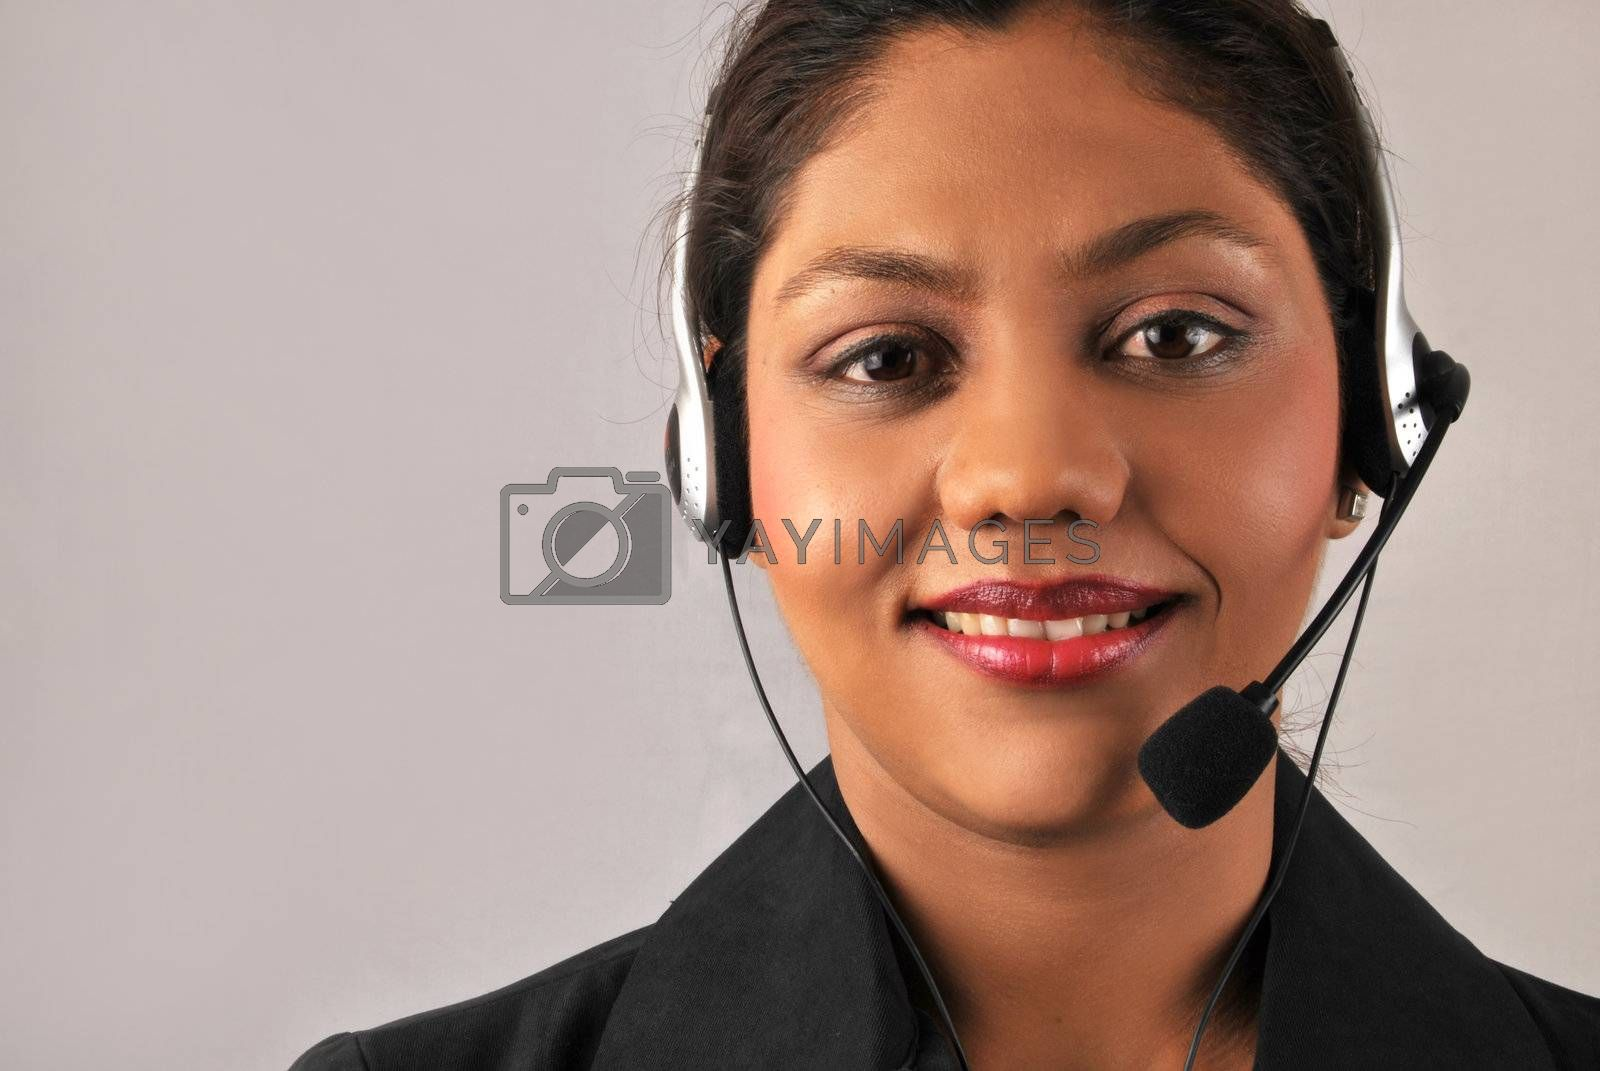 Smiling young Indian agent woman of a call center. Isolated over grey background with copy-space.